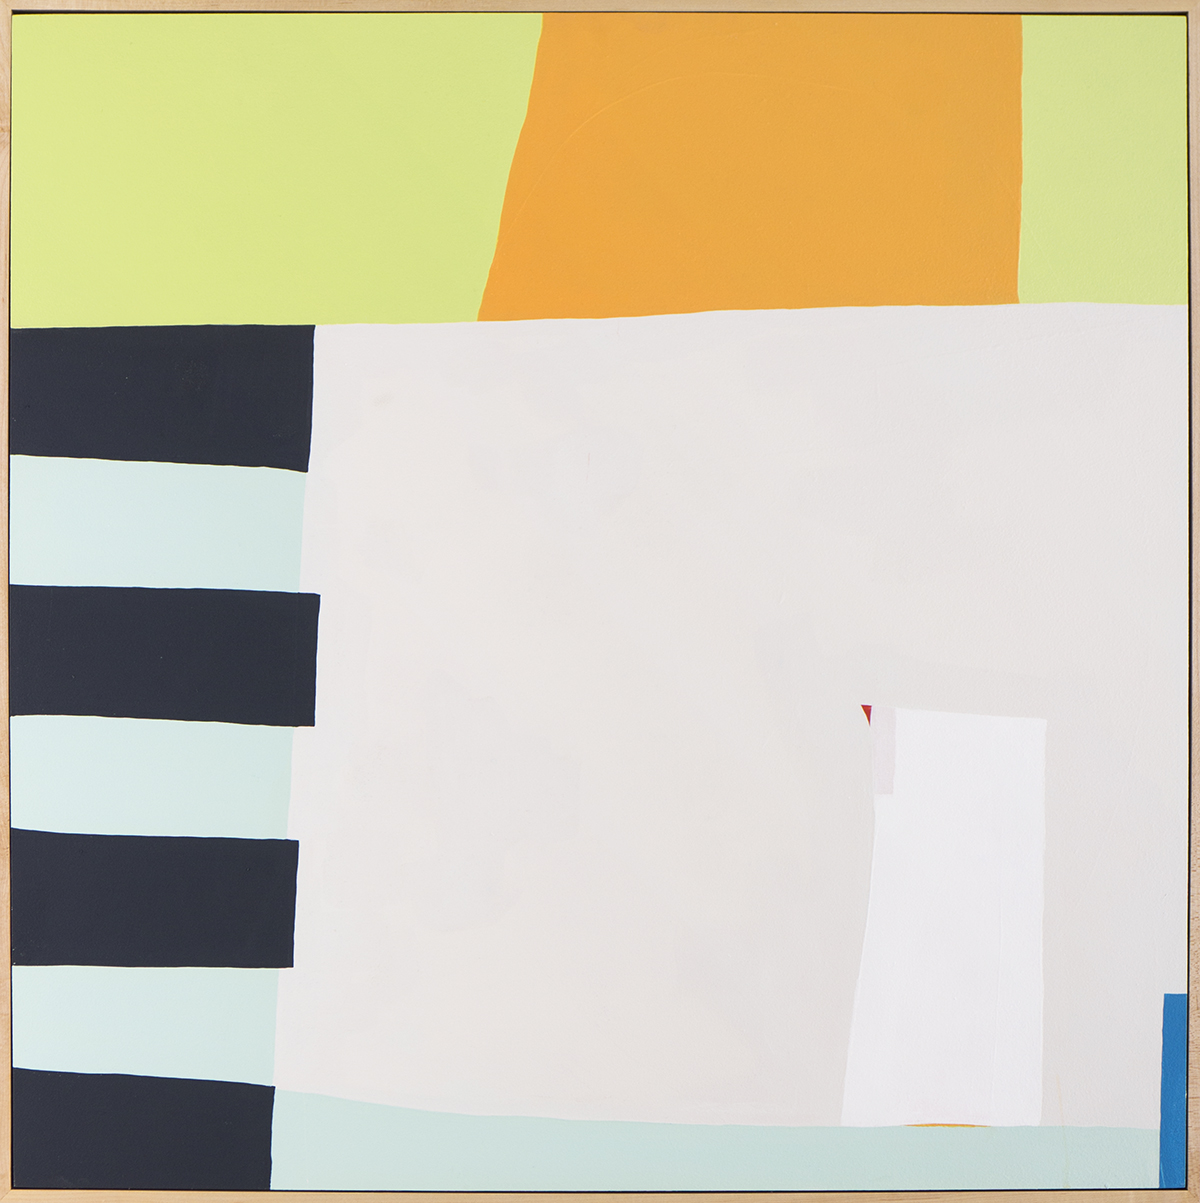 WhiteTank_2016_Acryliconpanel_30x30inches